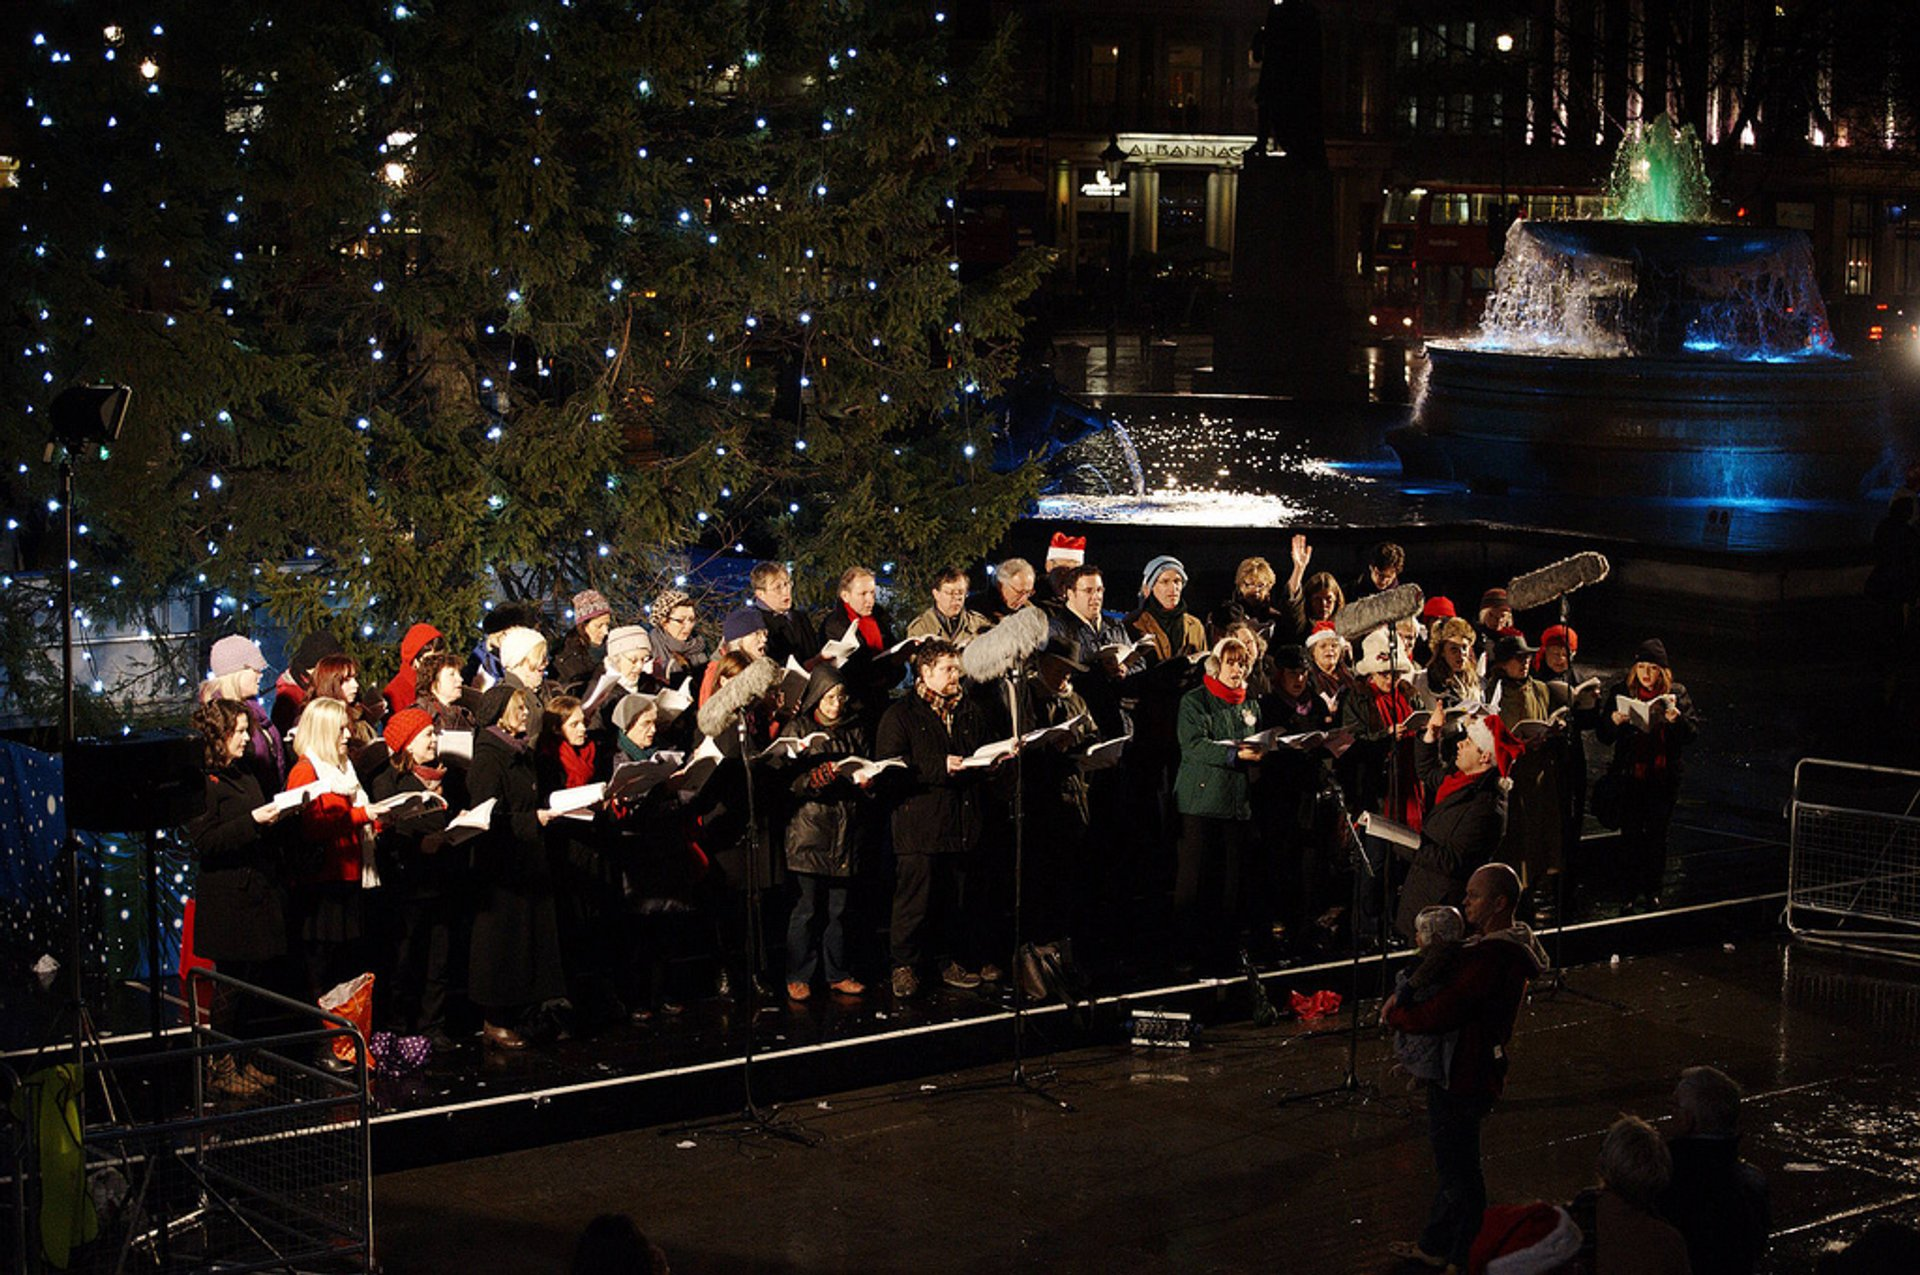 Christmas Carols in London 2019 - Best Time